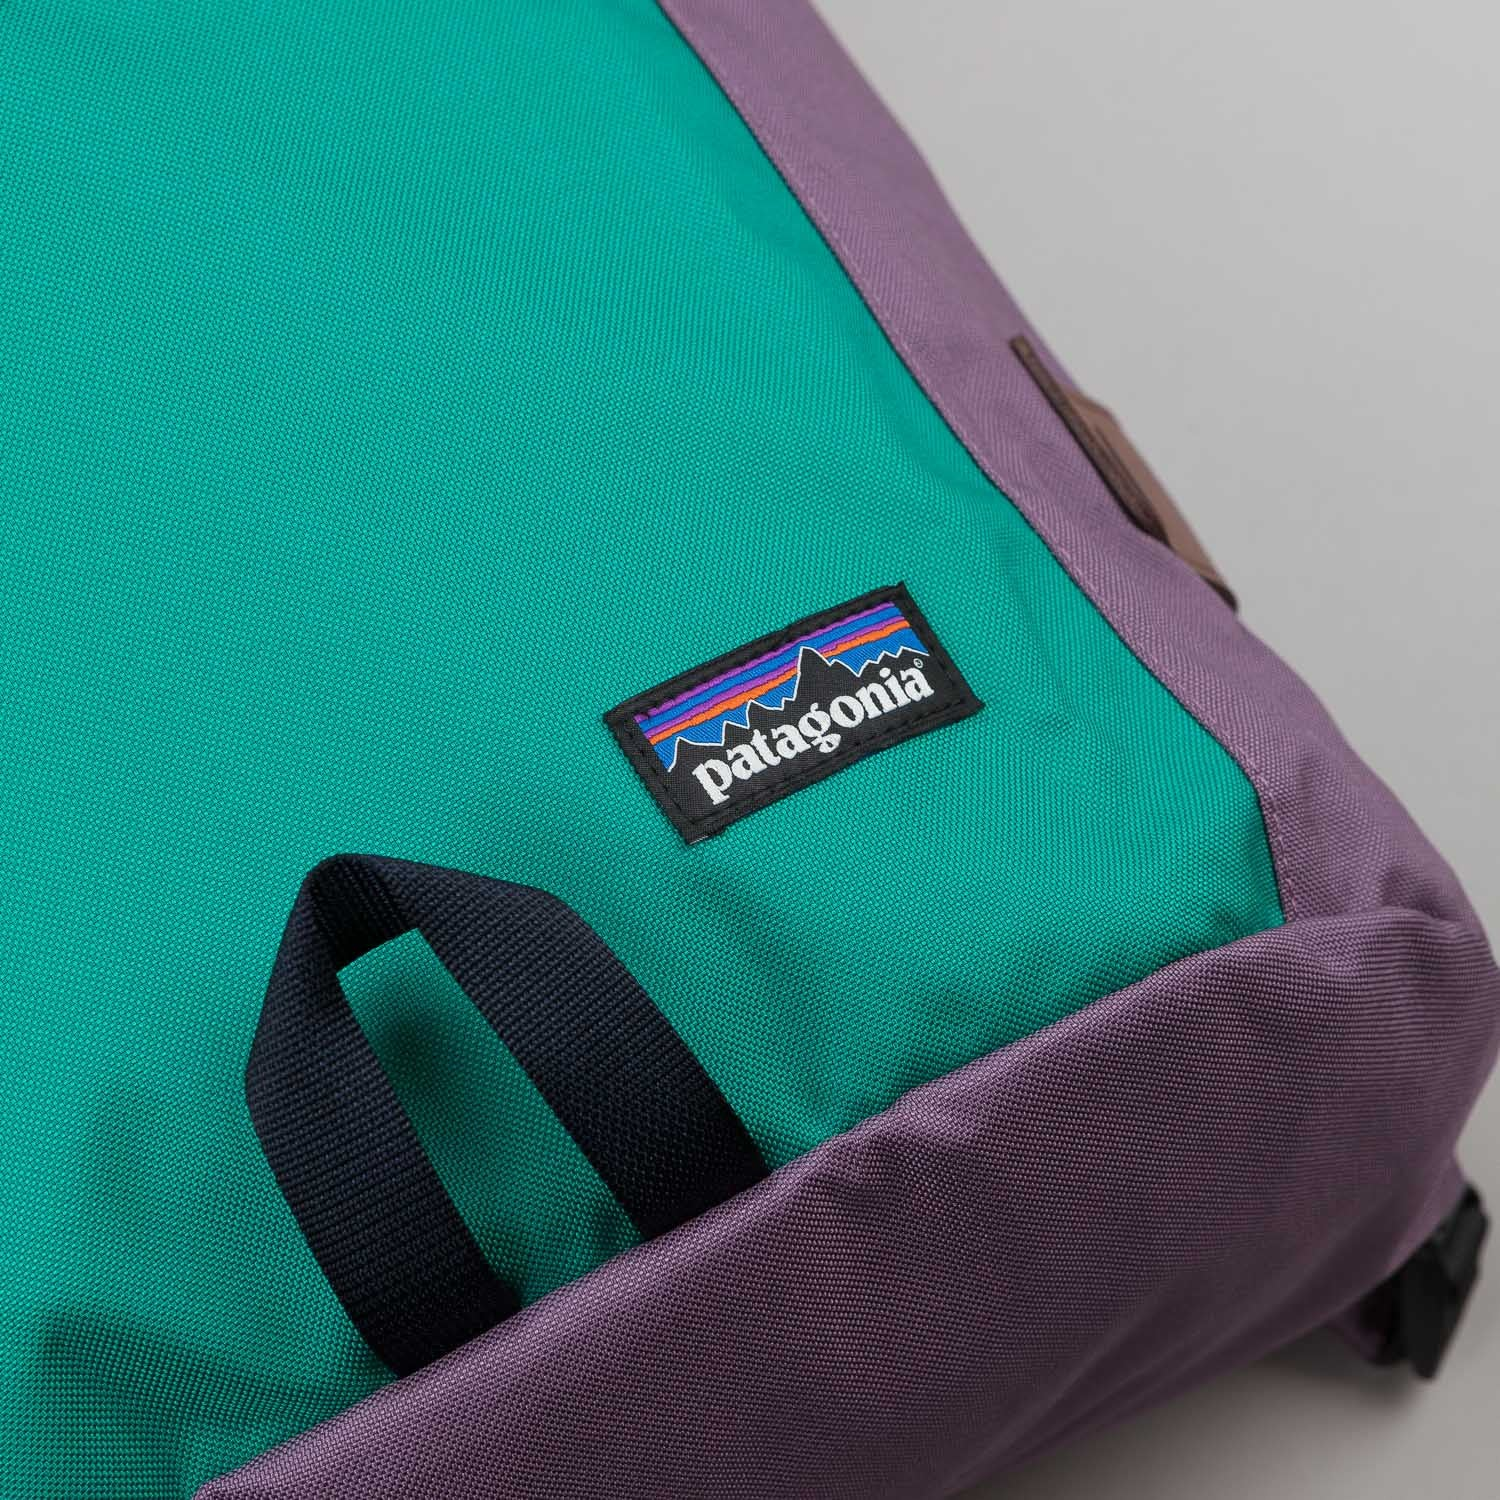 Patagonia Toromiro Backpack - Tyrian Purple